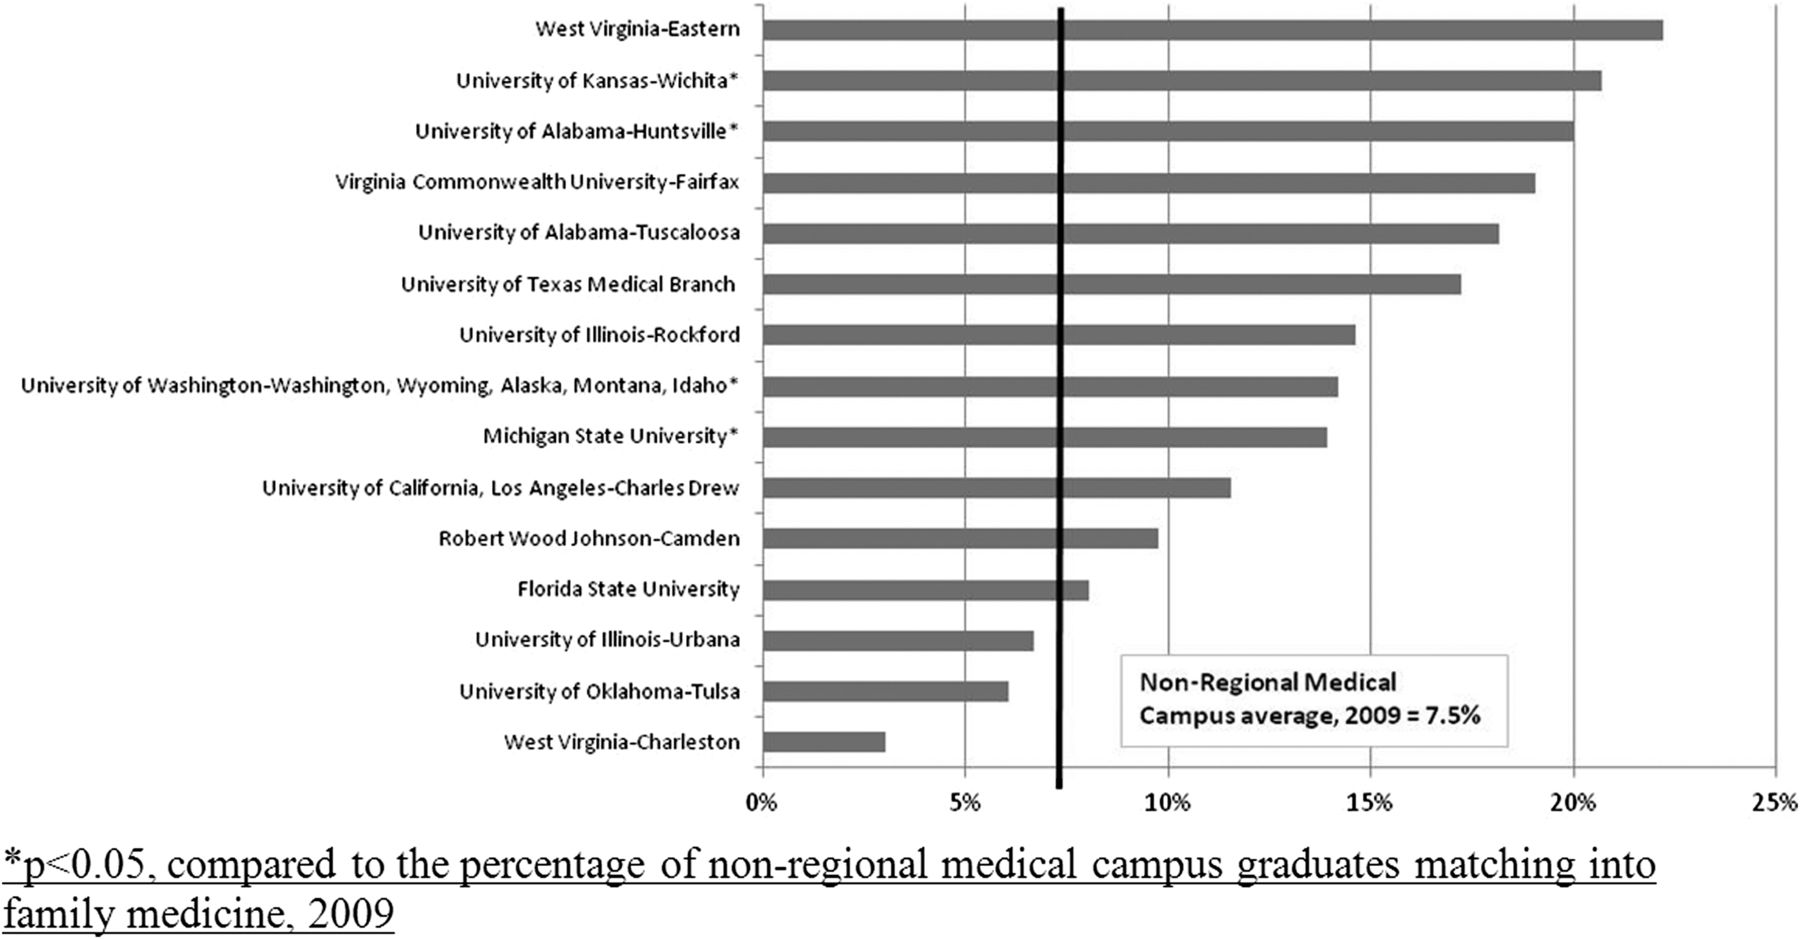 Match Rates into Family Medicine among Regional Medical